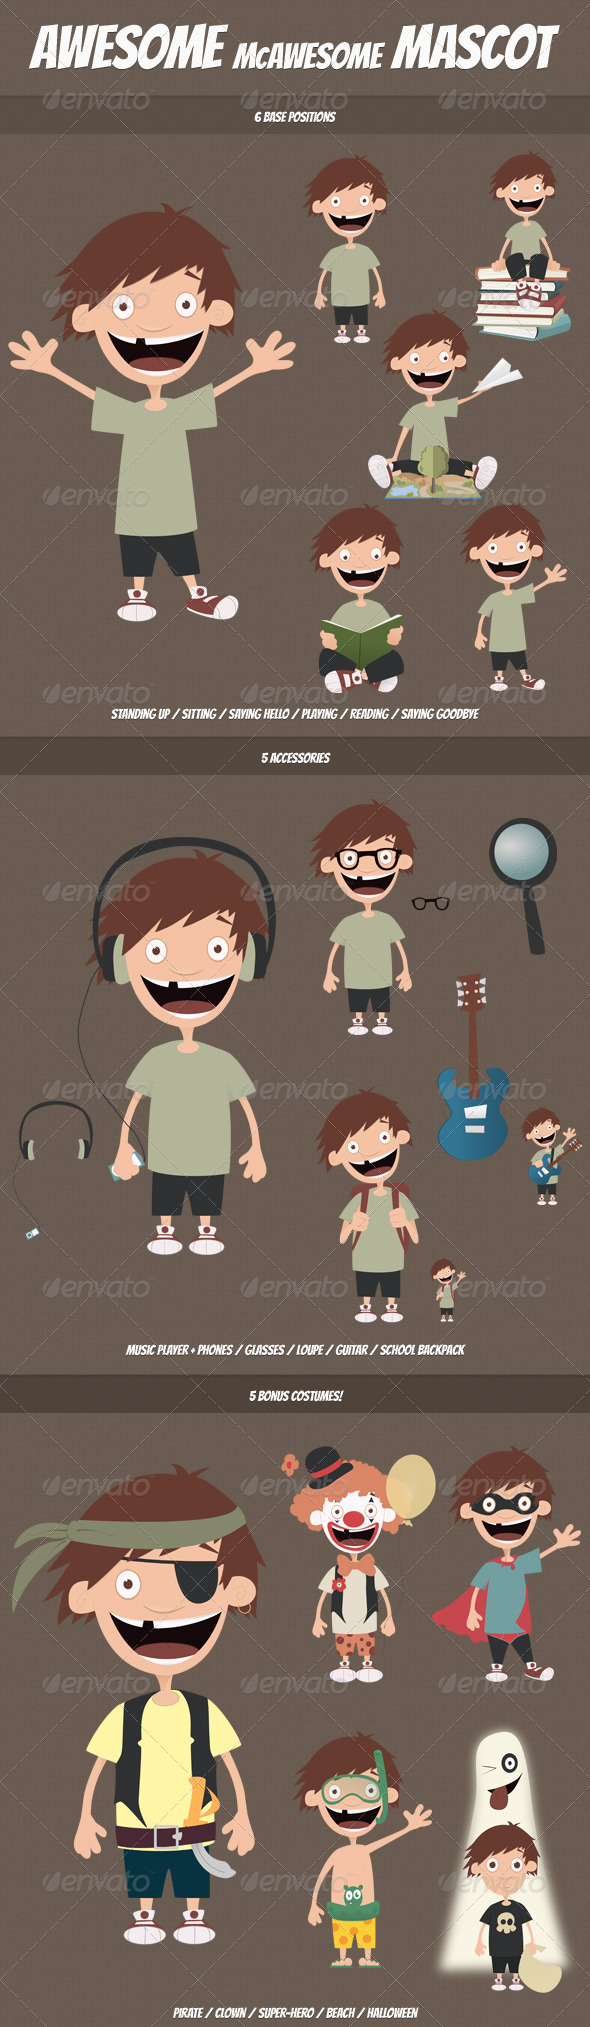 McAwesome Mascot - Characters Vectors